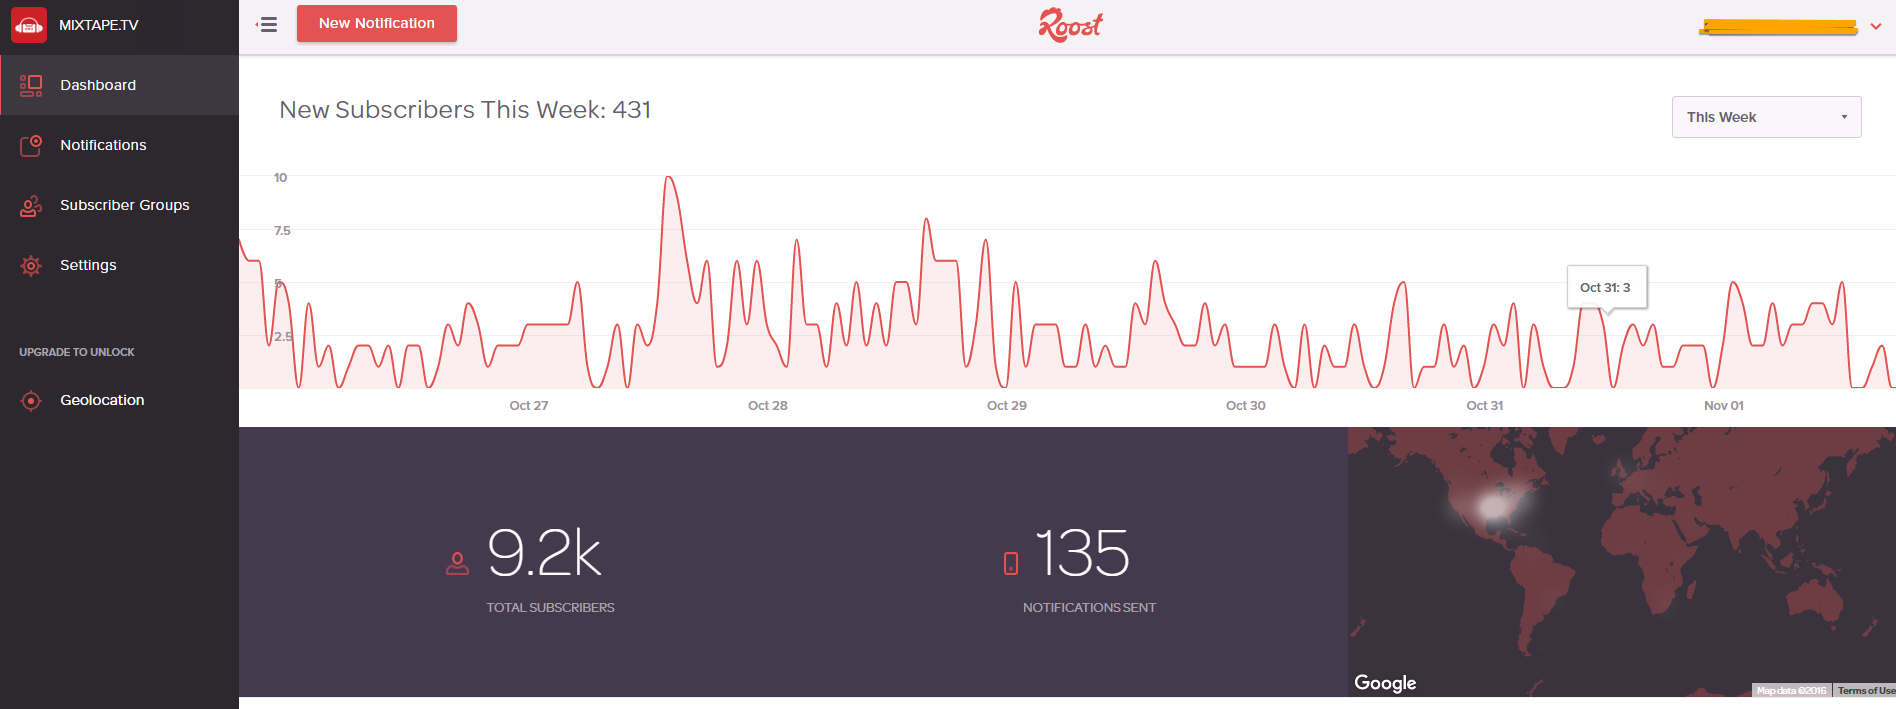 roost-stats-dashboard-showing